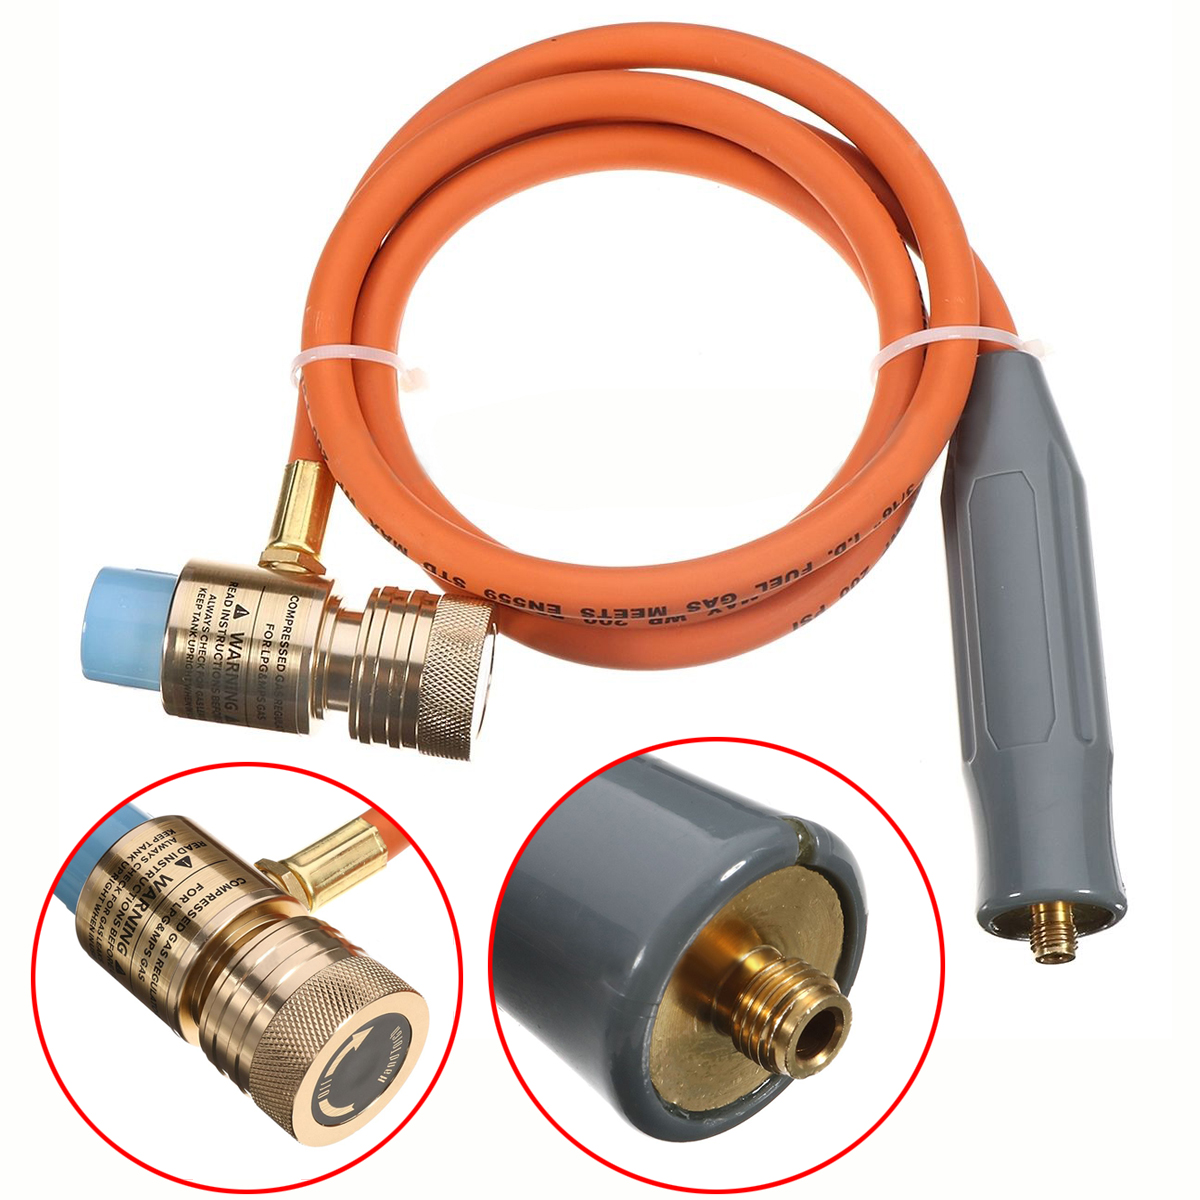 Adjustable Mayitr Solder Propane Welding Torch Gas Self Ignition Plumbing Turbo Torch With Hose for Plumbing Air Conditioning mig mag burner gas burner gas linternas wp 17 sr 17 tig welding torch complete 17feet 5meter soldering iron air cooled 150amp